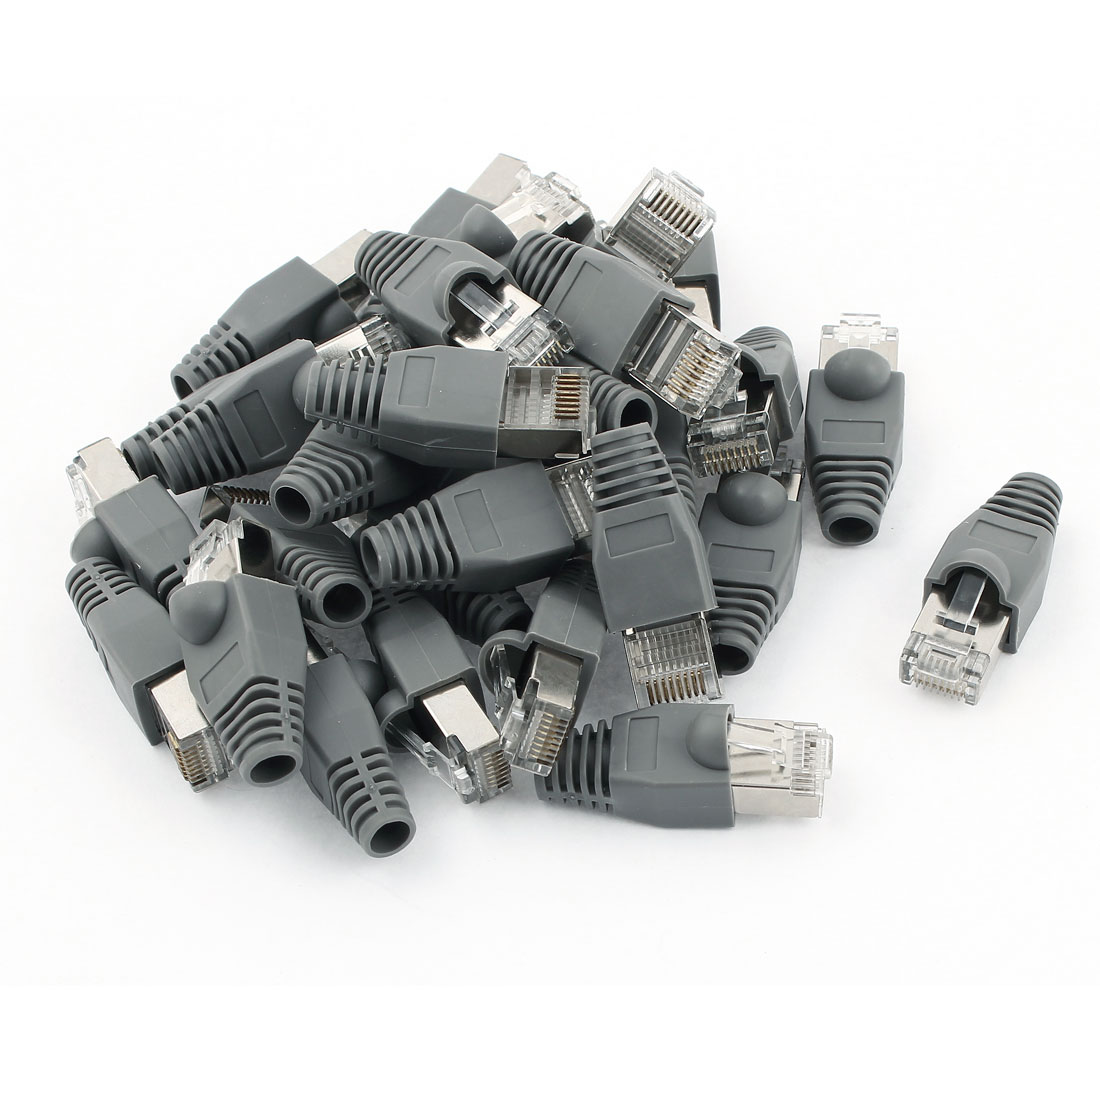 30 Pcs Gray Boot Cap RJ45 8P8C Cat5 Shield Modular Network Plug Connector